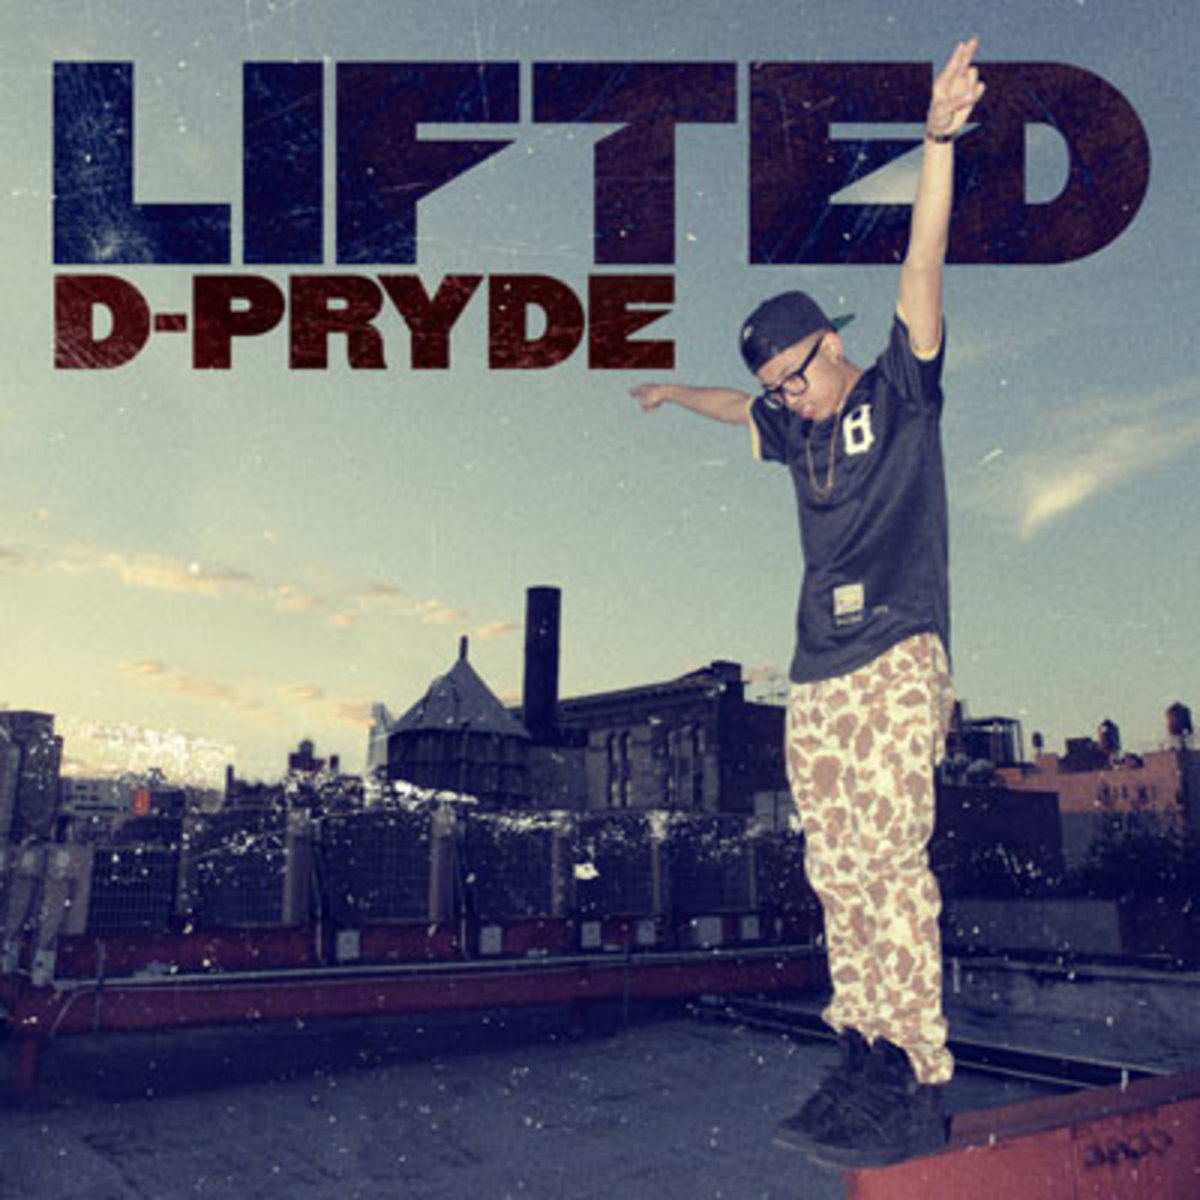 dpryde-lifted.jpg